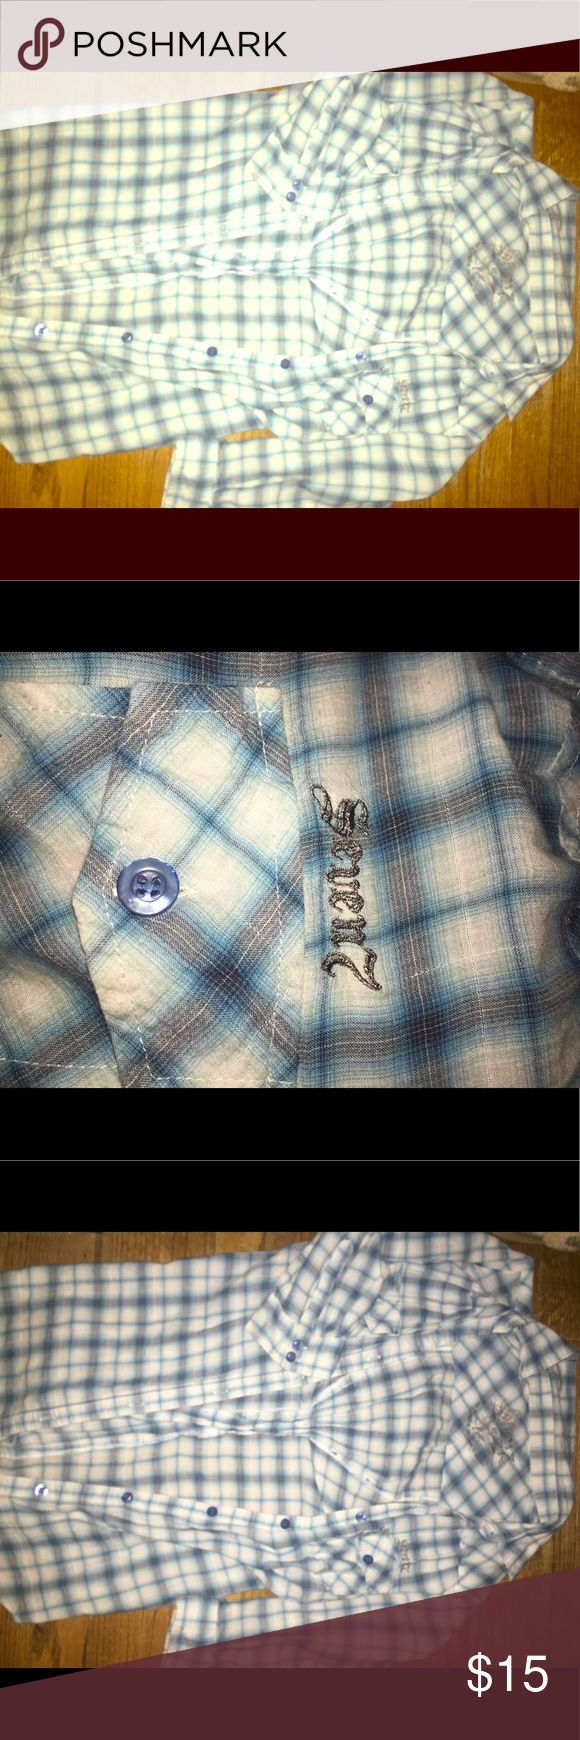 Light blue plaid shirt For sale here is a very nice and comfortable light blue plaid shirt by Seven. Has 3/4 sleeves and a cinched fabric in the back for definition. Perfect pairing with ripped Jean shorts and favorite sandals. Has that beachy worn in feel soft material. No rips, tears or fraying.  Well cared for but just running out of room! It needs a new home. A long necklace is included to compliment this little gem. Offers are welcome. No trades. Seven7 Tops Button Down Shirts